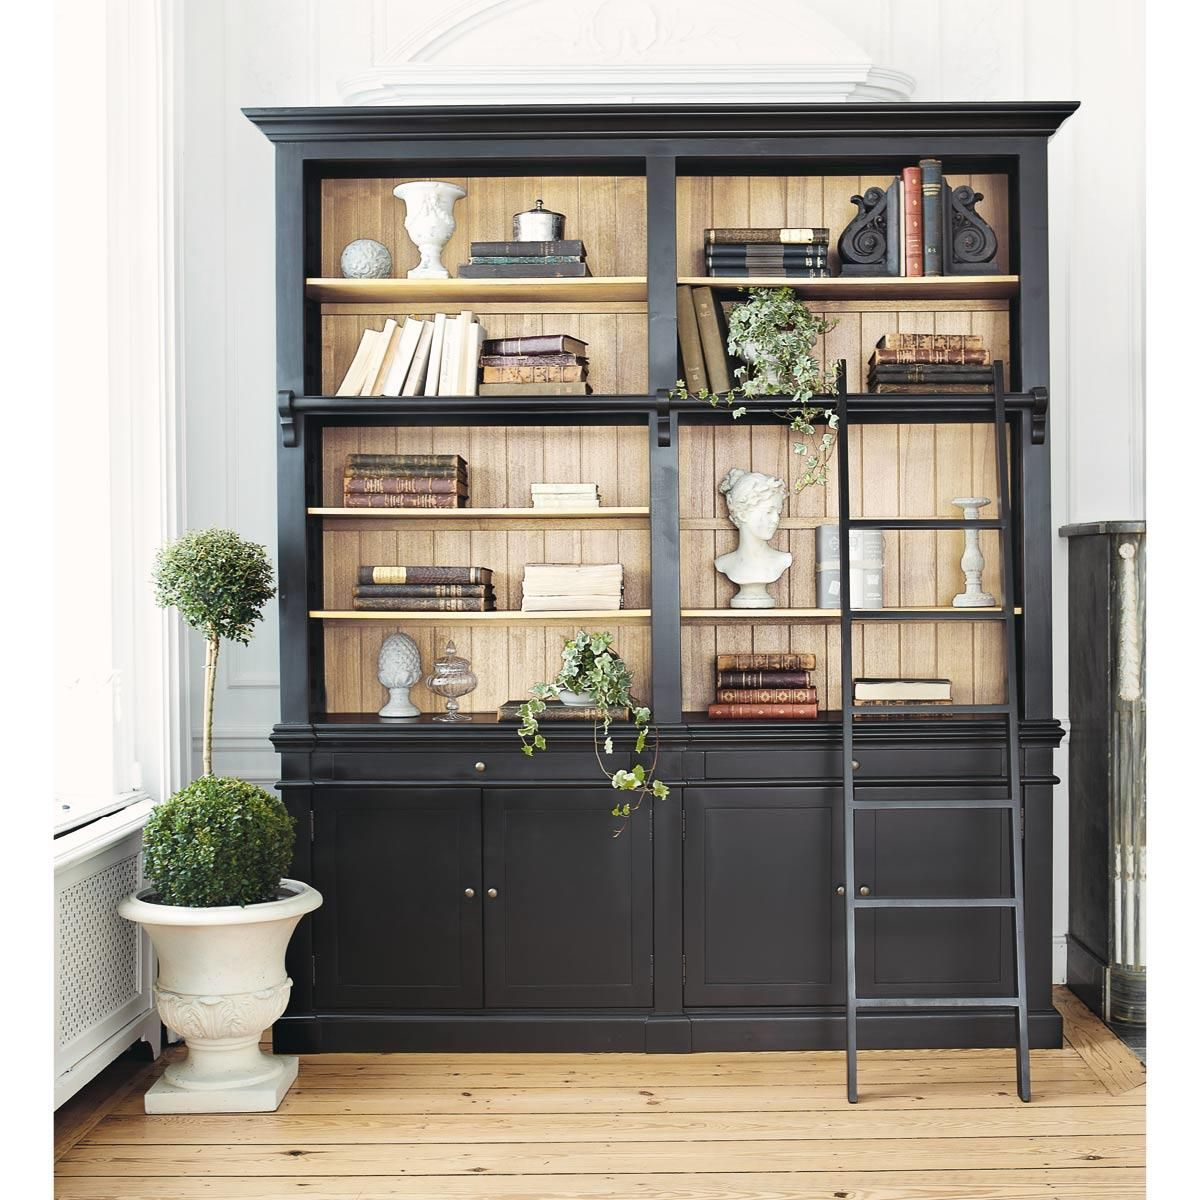 biblioth que avec chelle en pin massif noir biblioth que avec chelle chelles en bois et. Black Bedroom Furniture Sets. Home Design Ideas